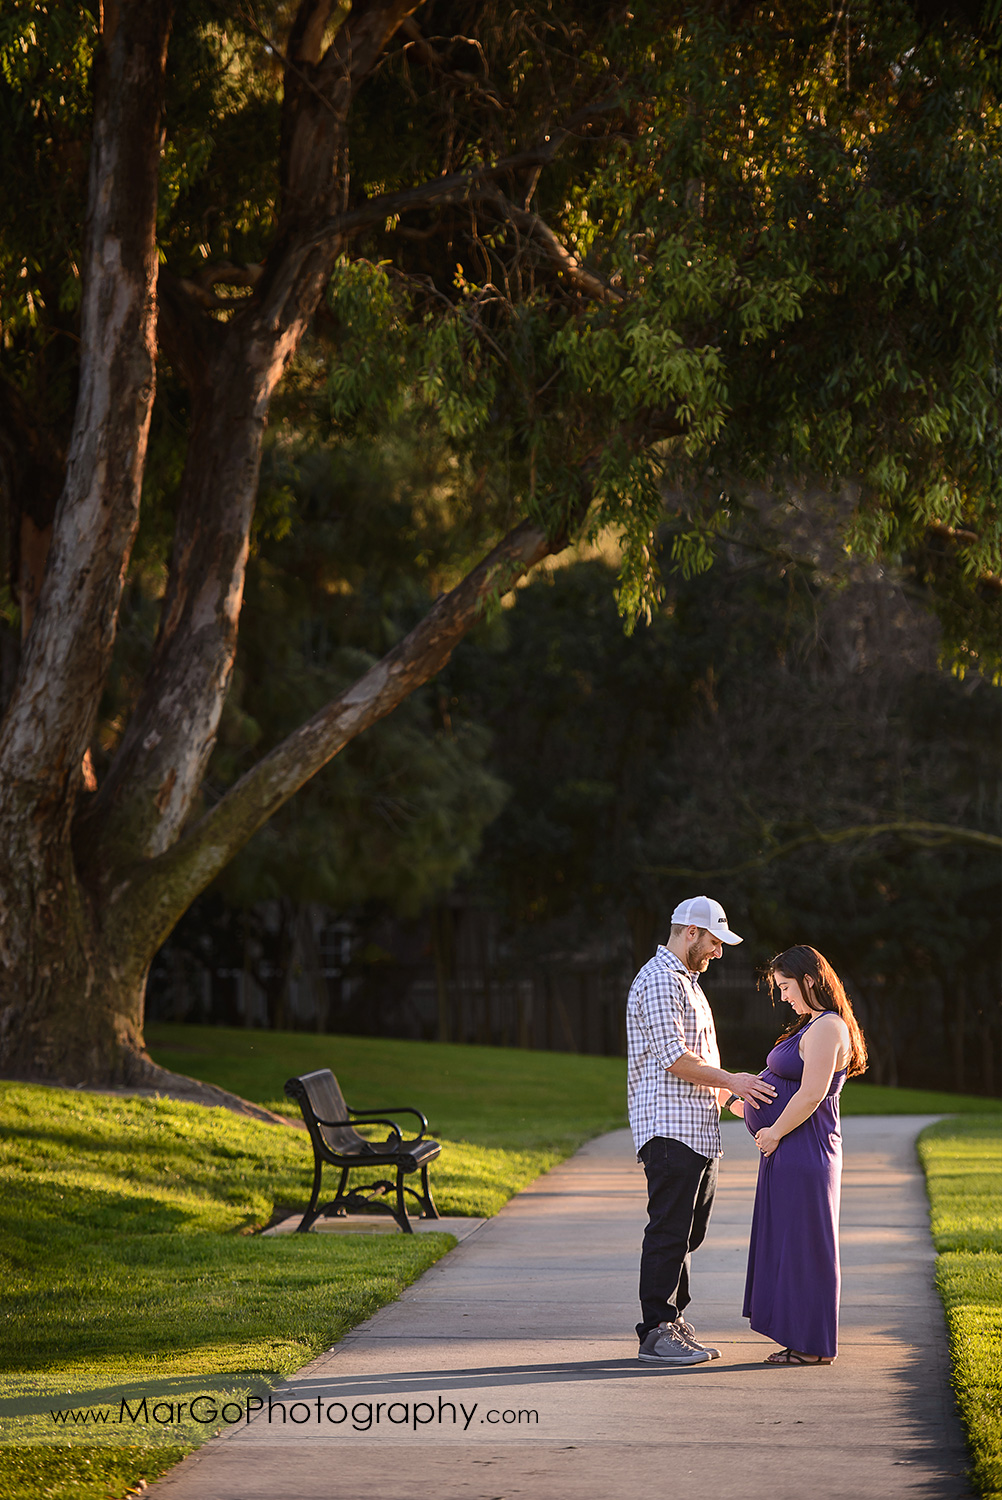 man in checkered shirt and pregnant woman in long violet dress looking at belly during maternity session at Lick Mill Park in Santa Clara